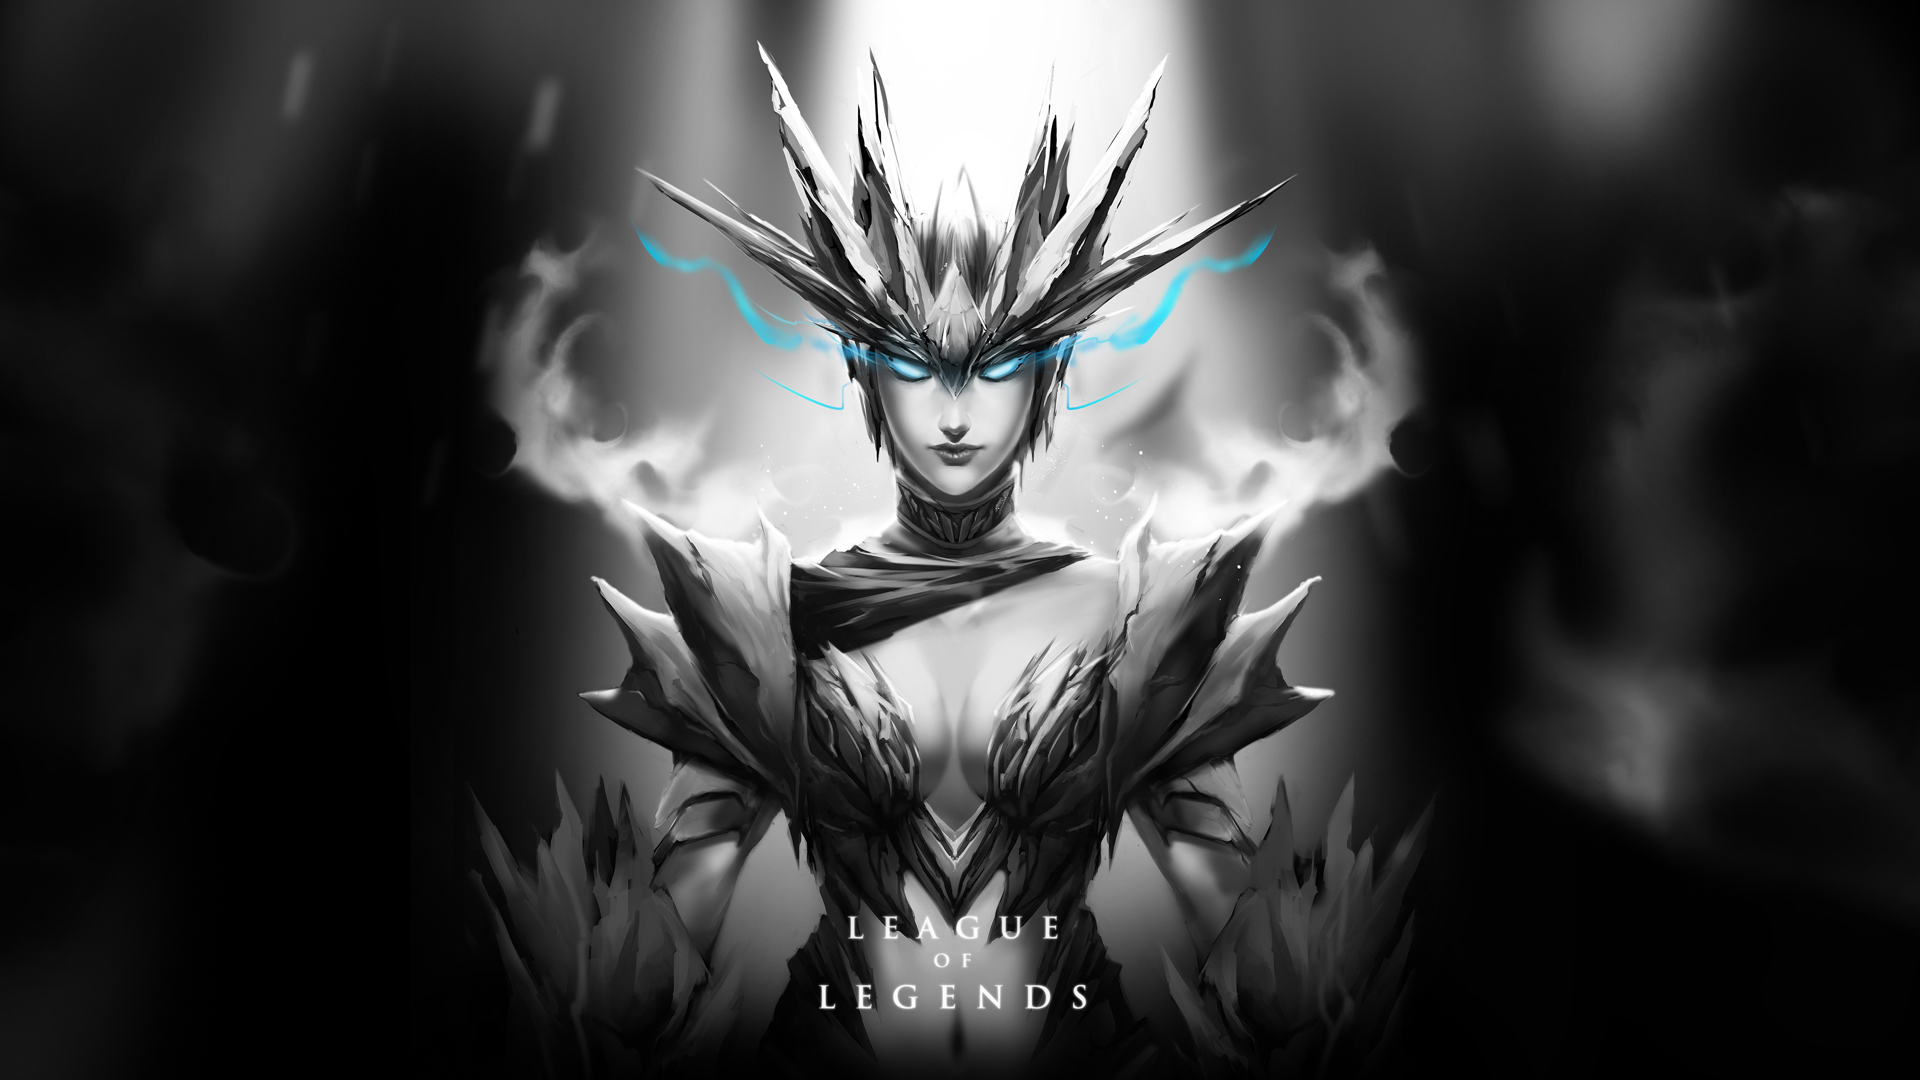 Ice Drake Shyvana League Of Legends Wallpapers HD 1920x1080